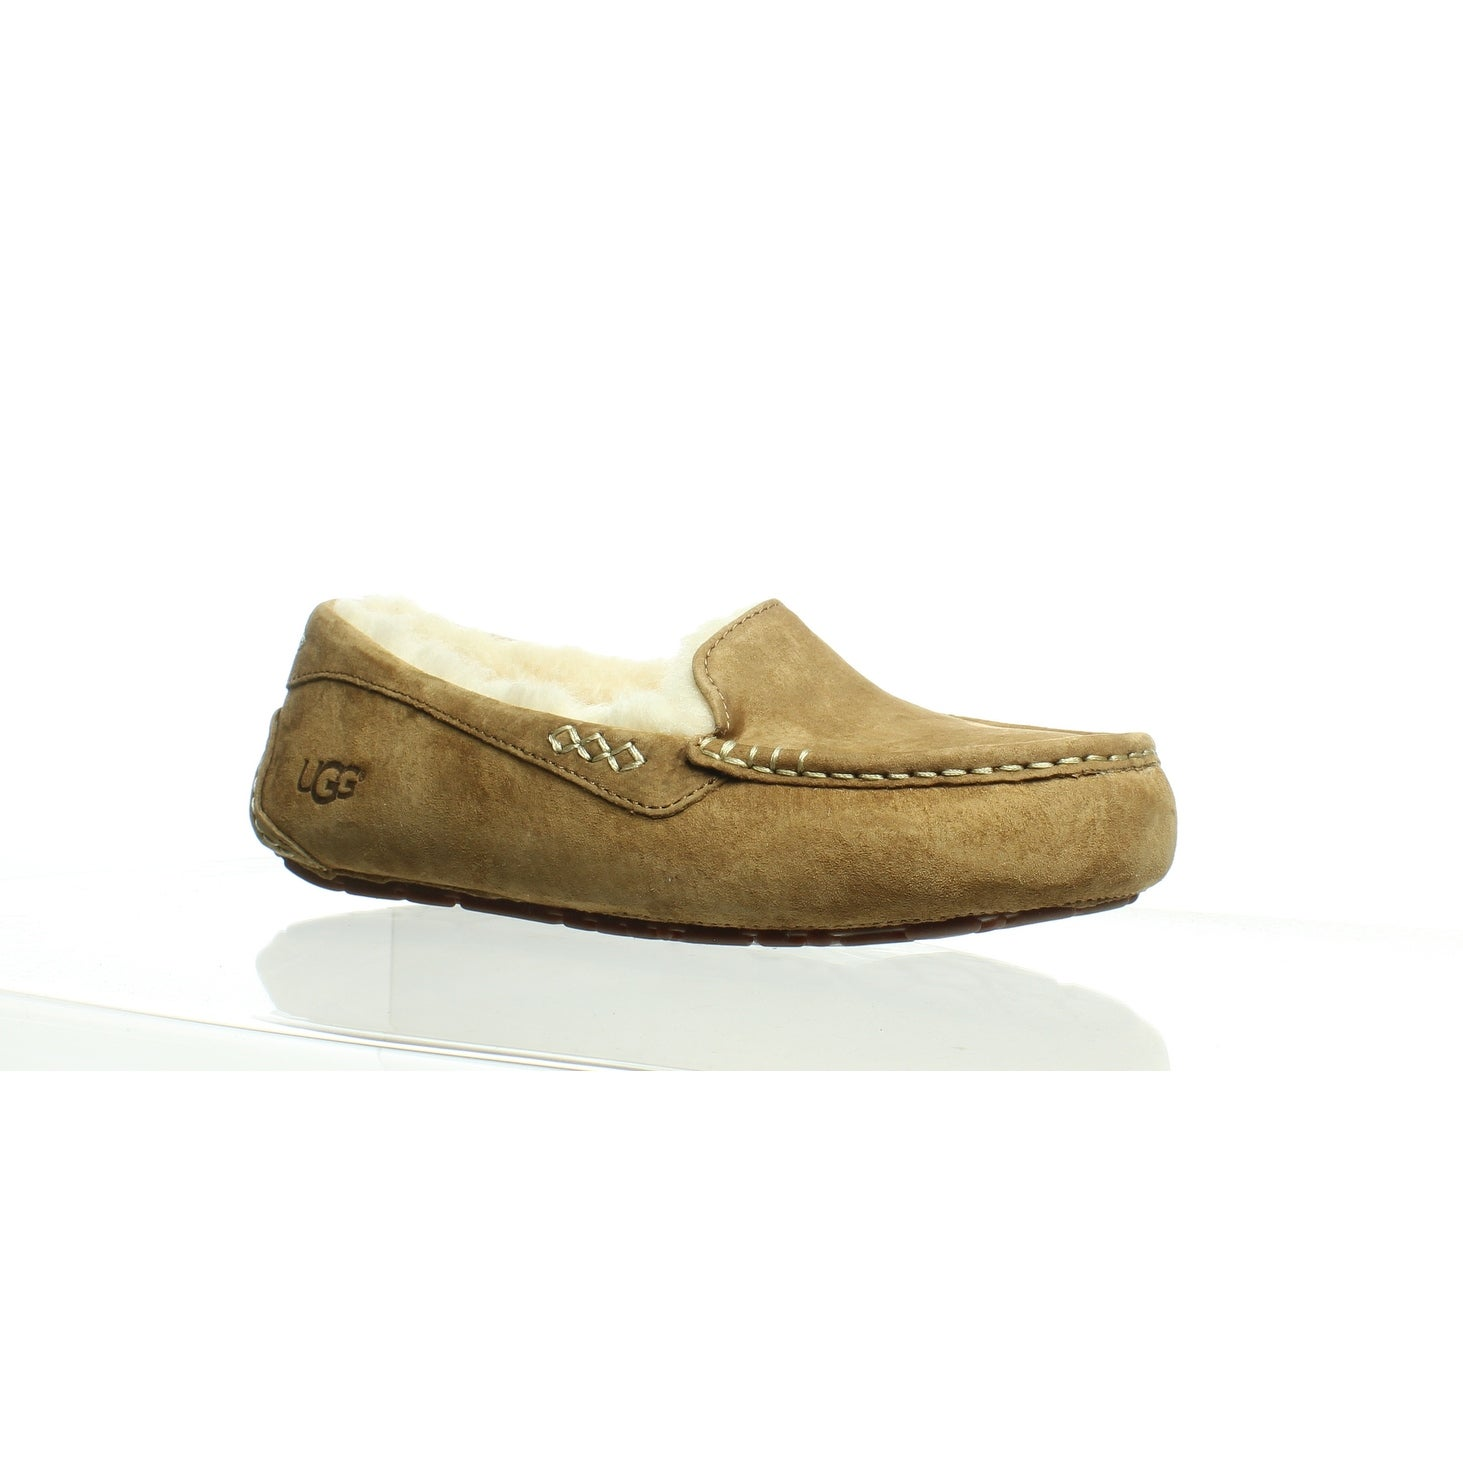 b68073d6c19 UGG Womens Ansley Chestnut Mule Slippers Size 9